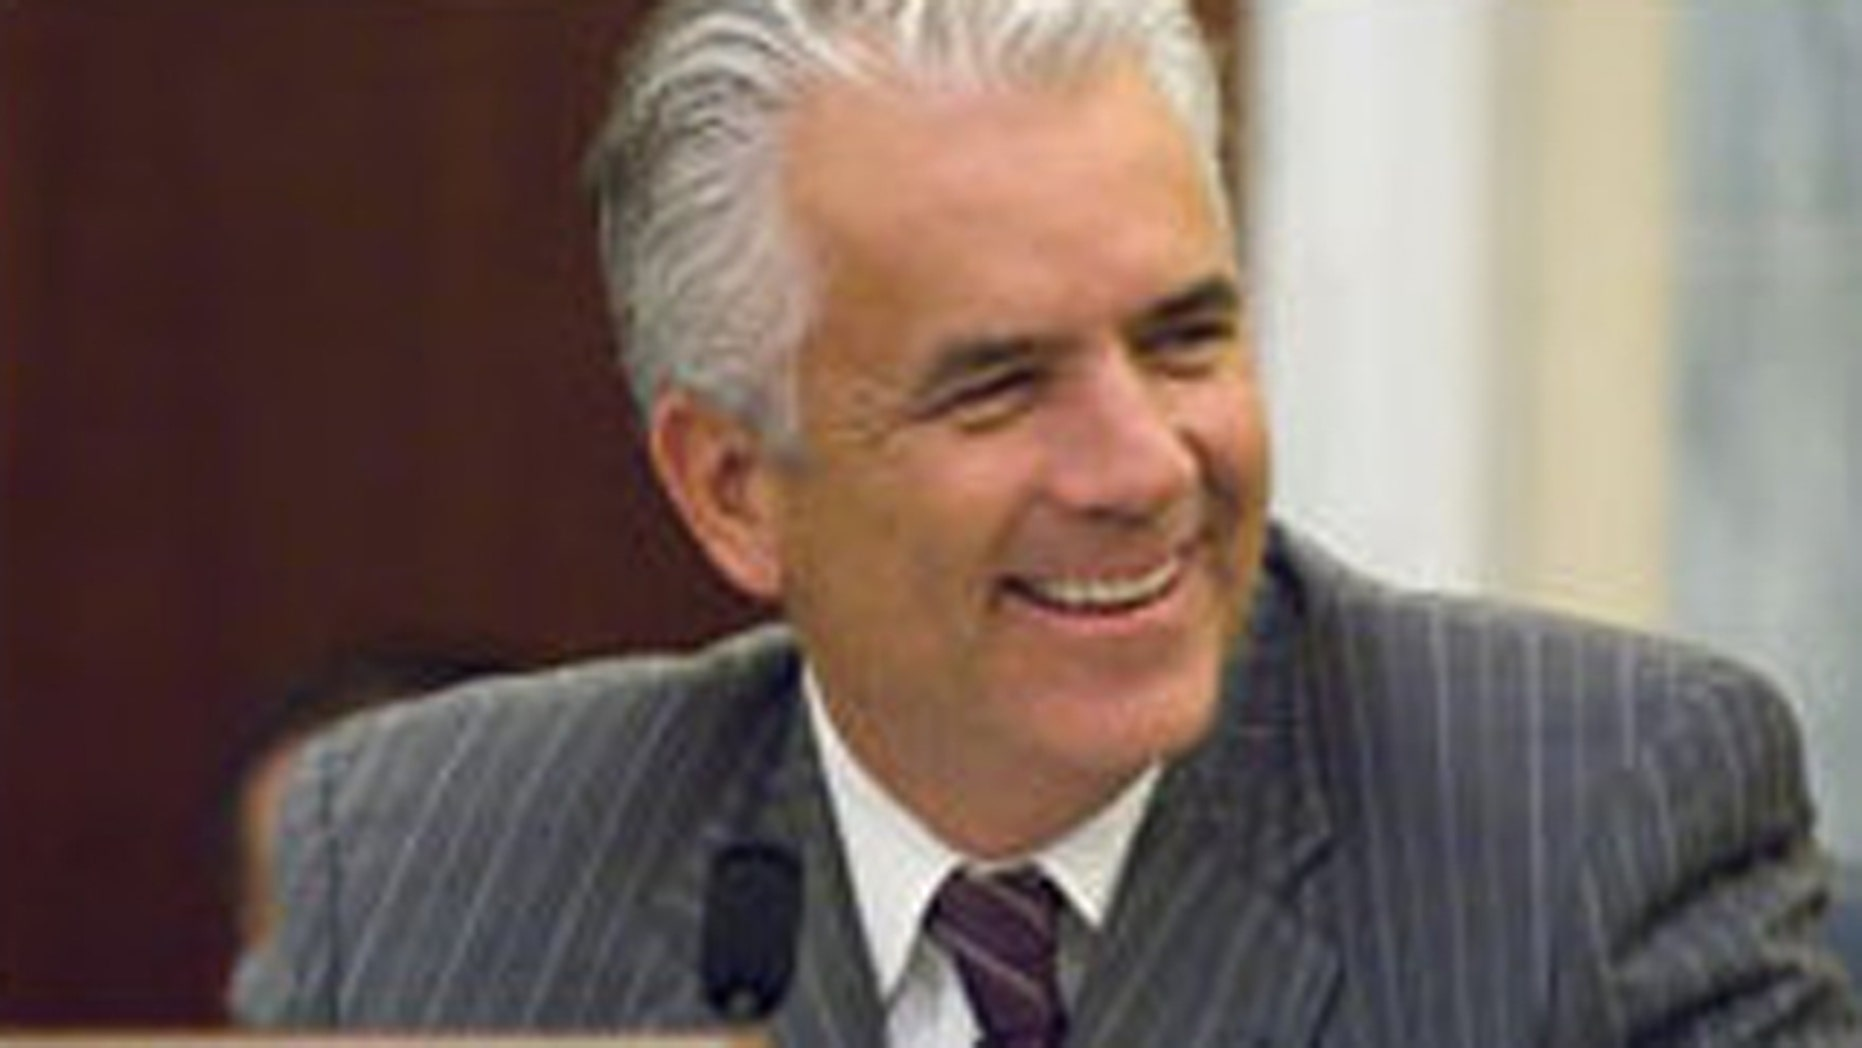 Sen. John Ensign, shown here in an undated photo, says Nevada should not ban prostitution and local governments should decide the fate of the world's oldest profession.